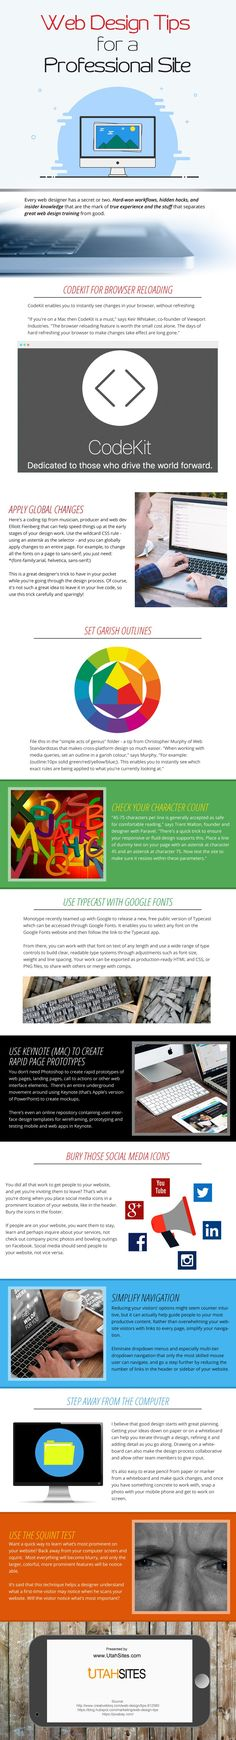 Infographic on Web Design Tips for a Professional Site